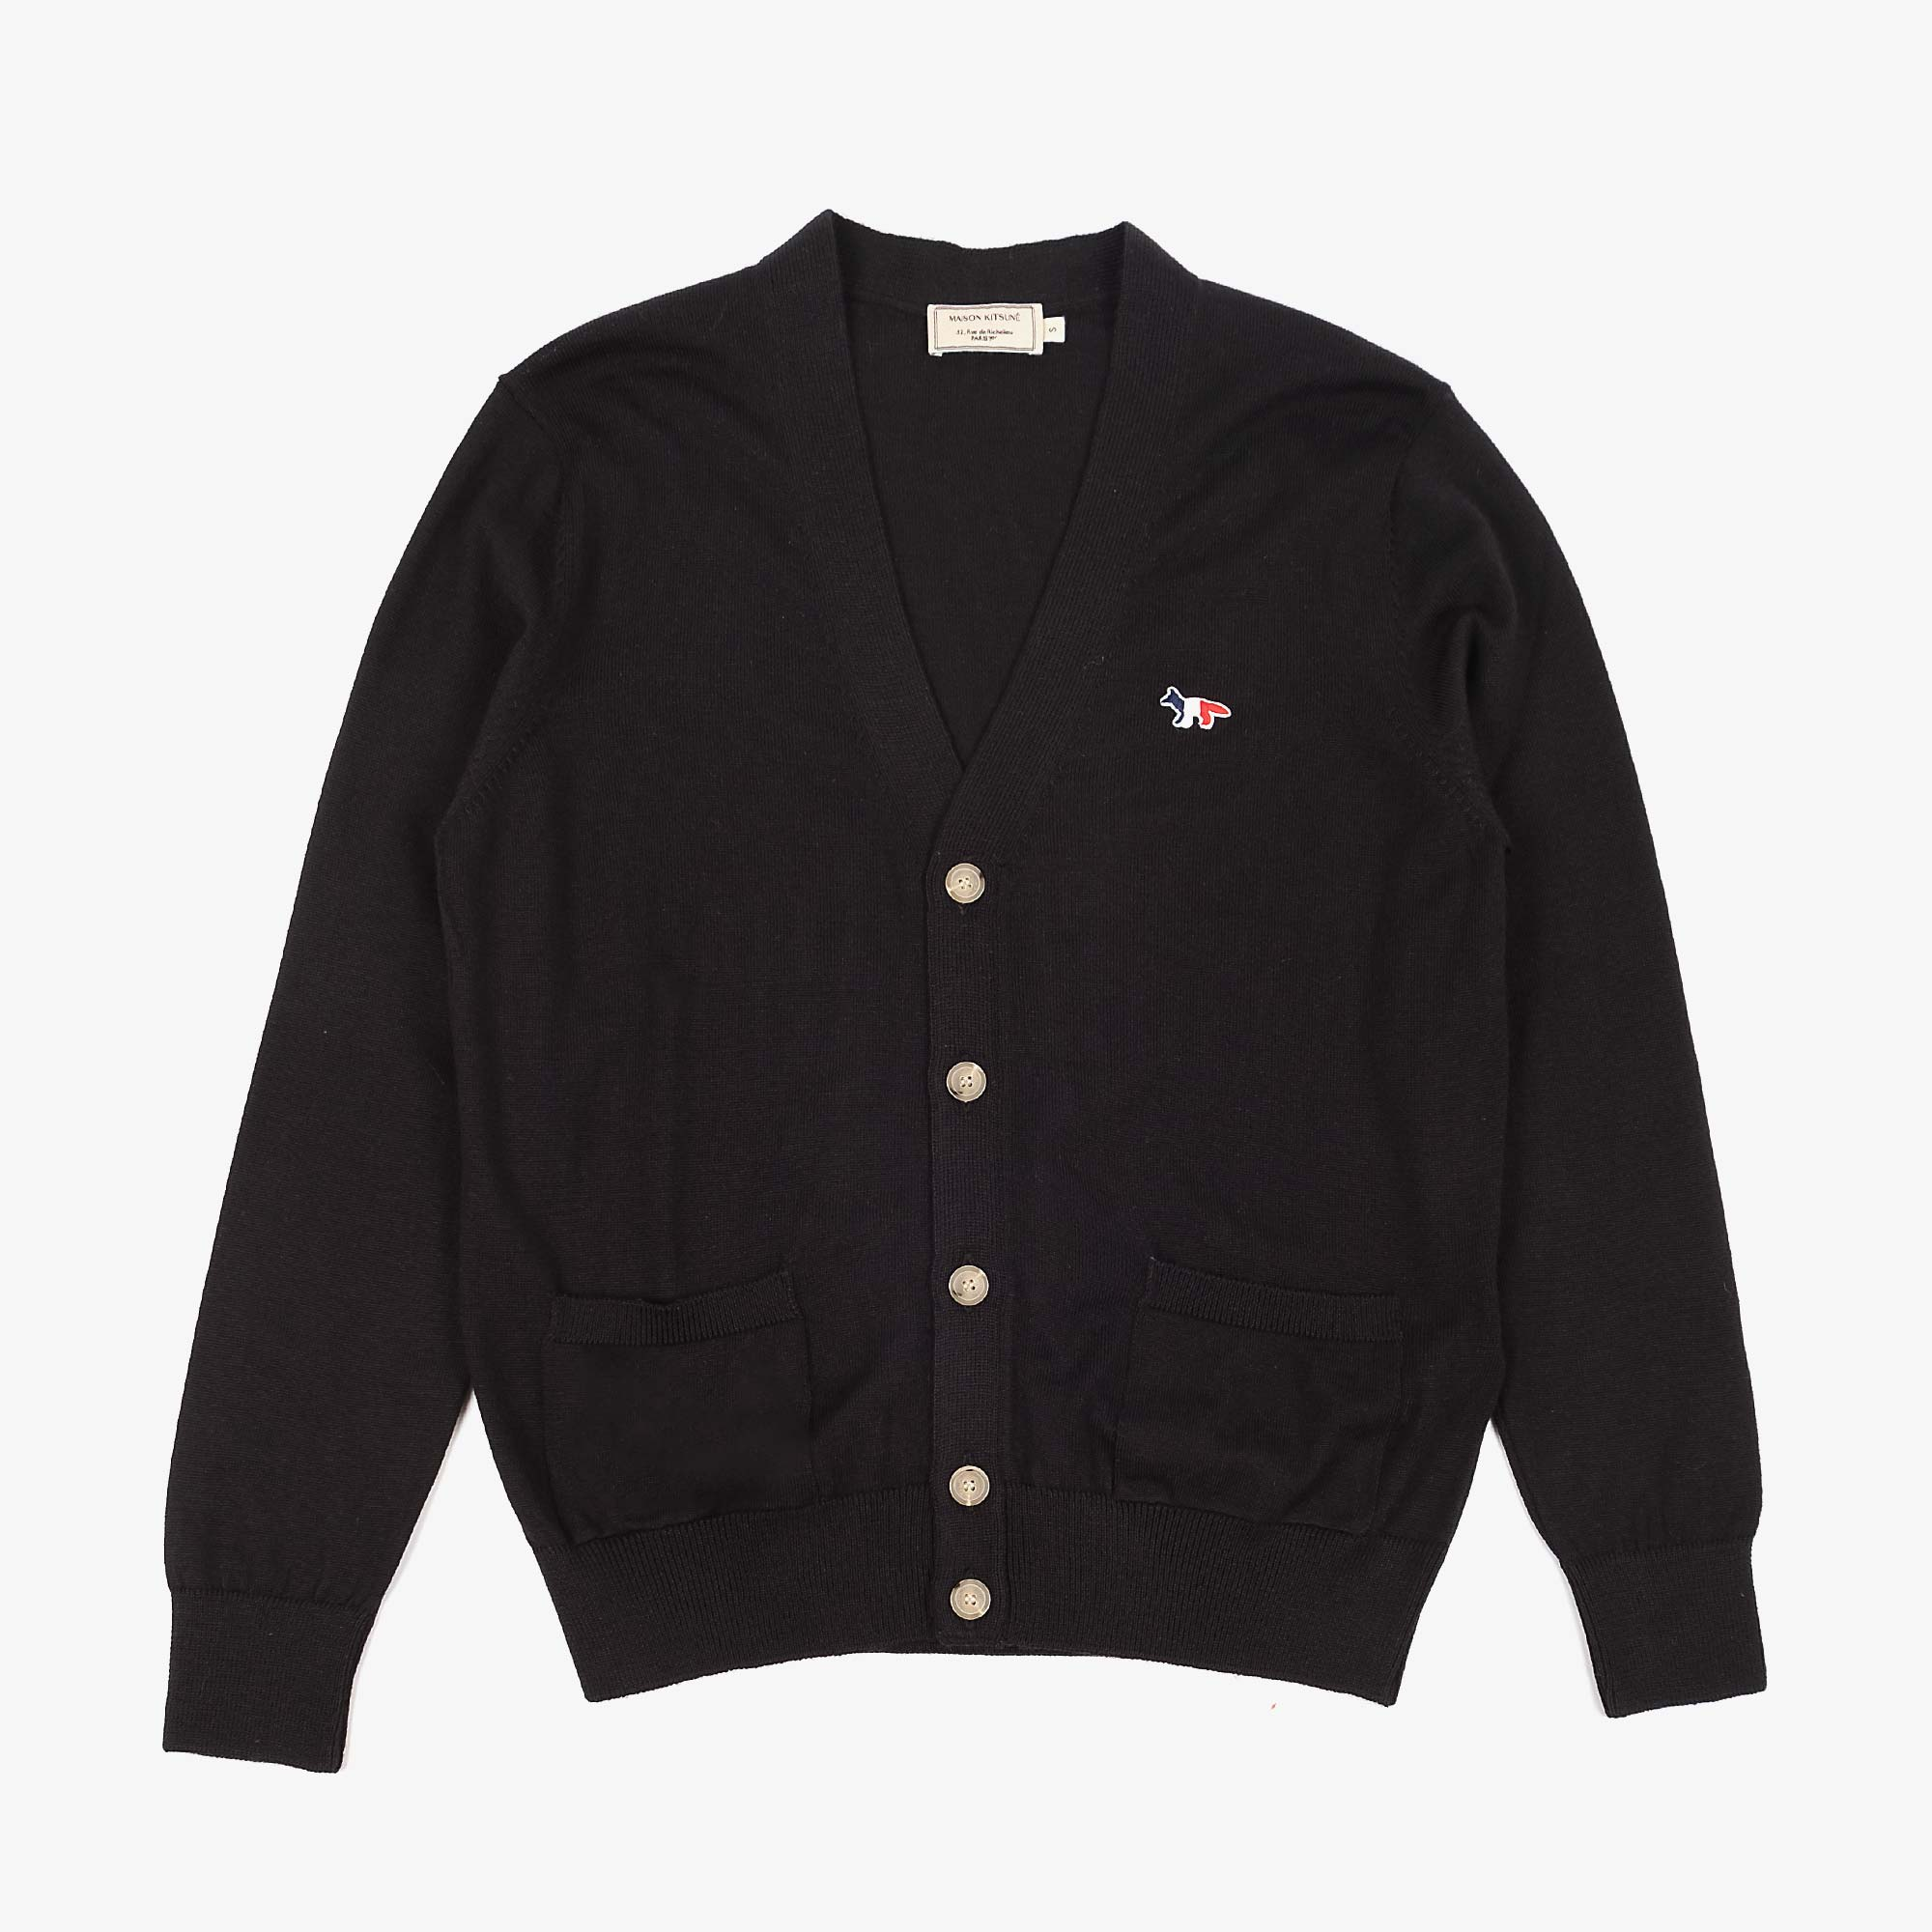 Maison Kitsune Mens Tricolour Fox Patch Merino Cardigan - Black 1